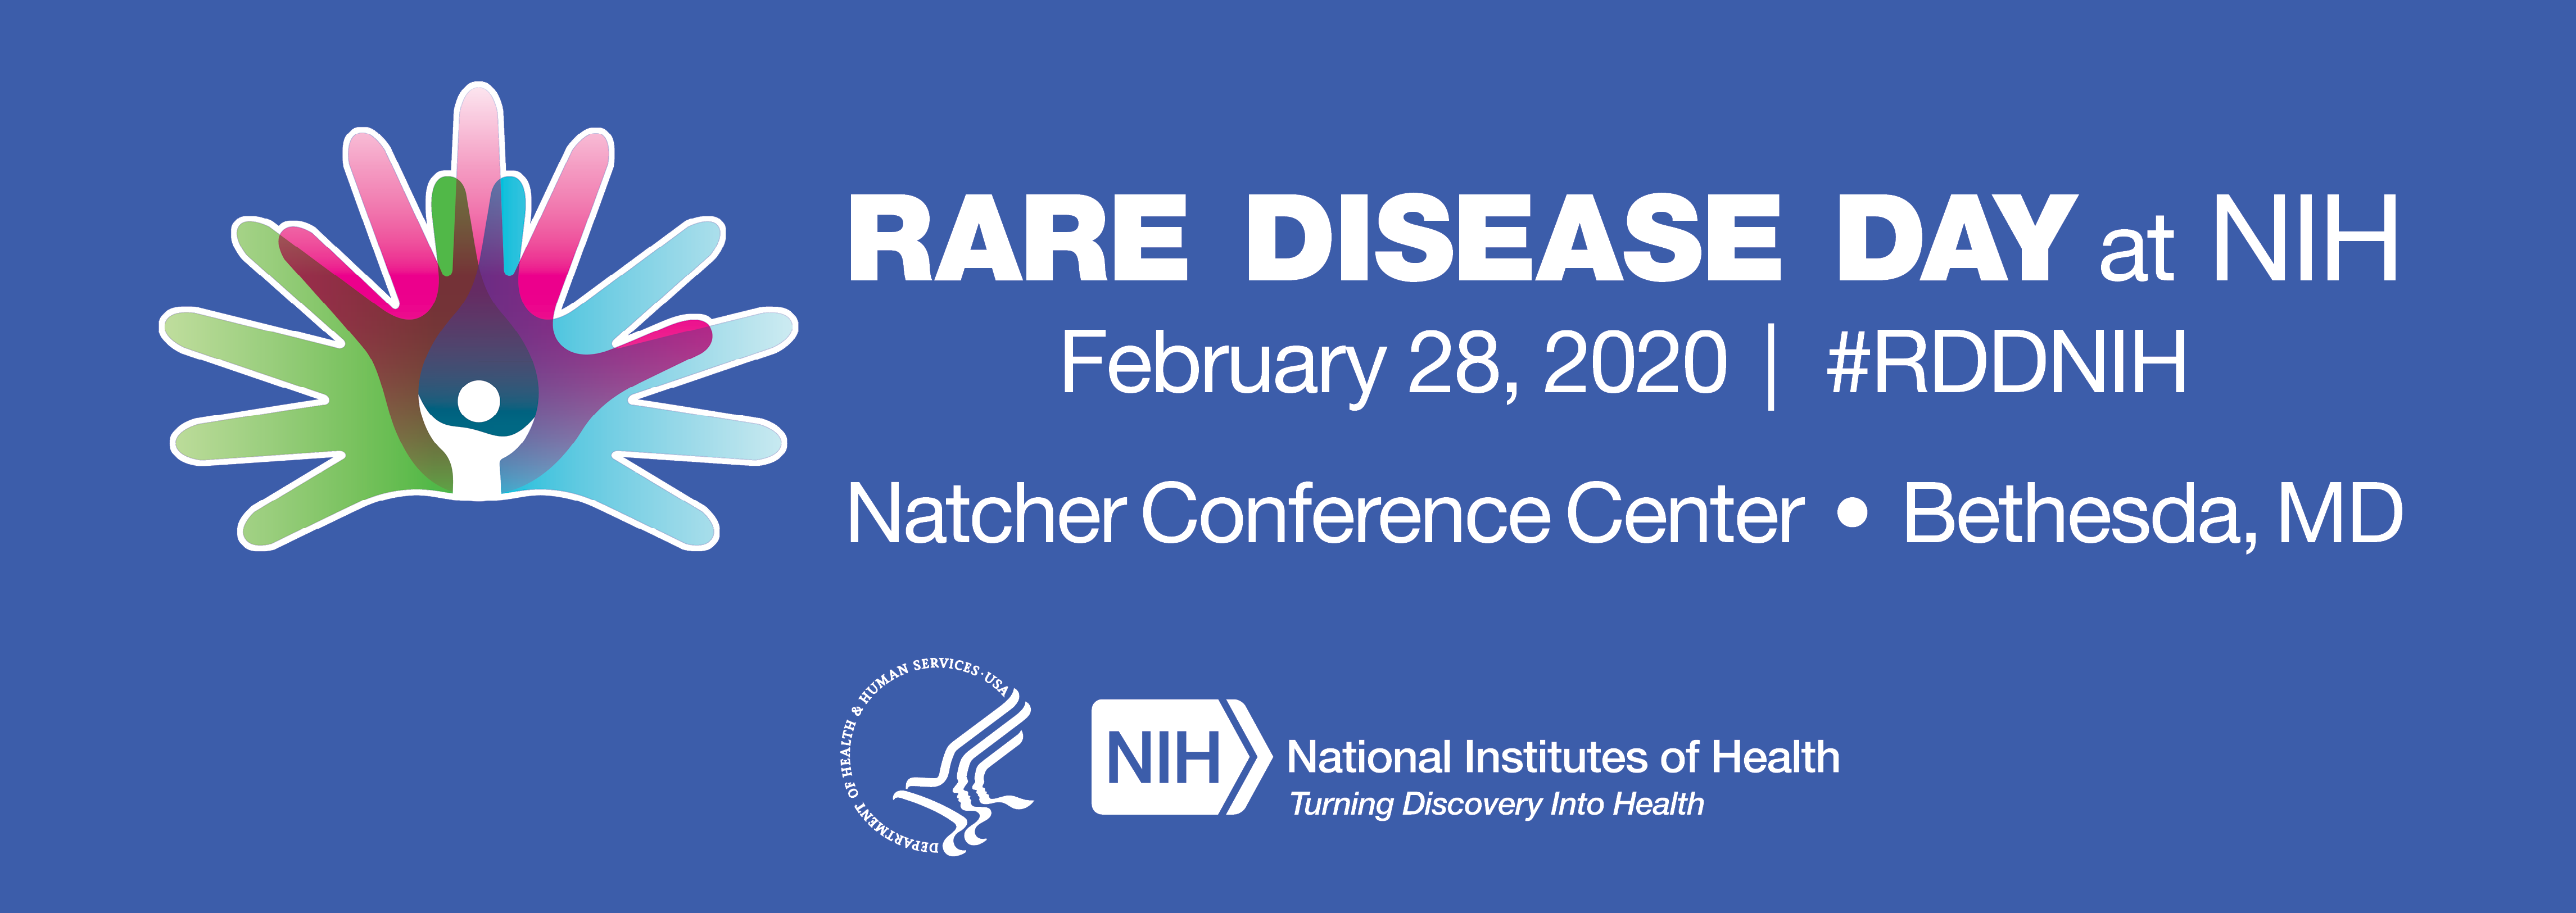 Rare Disease Day at NIH 2020 information banner